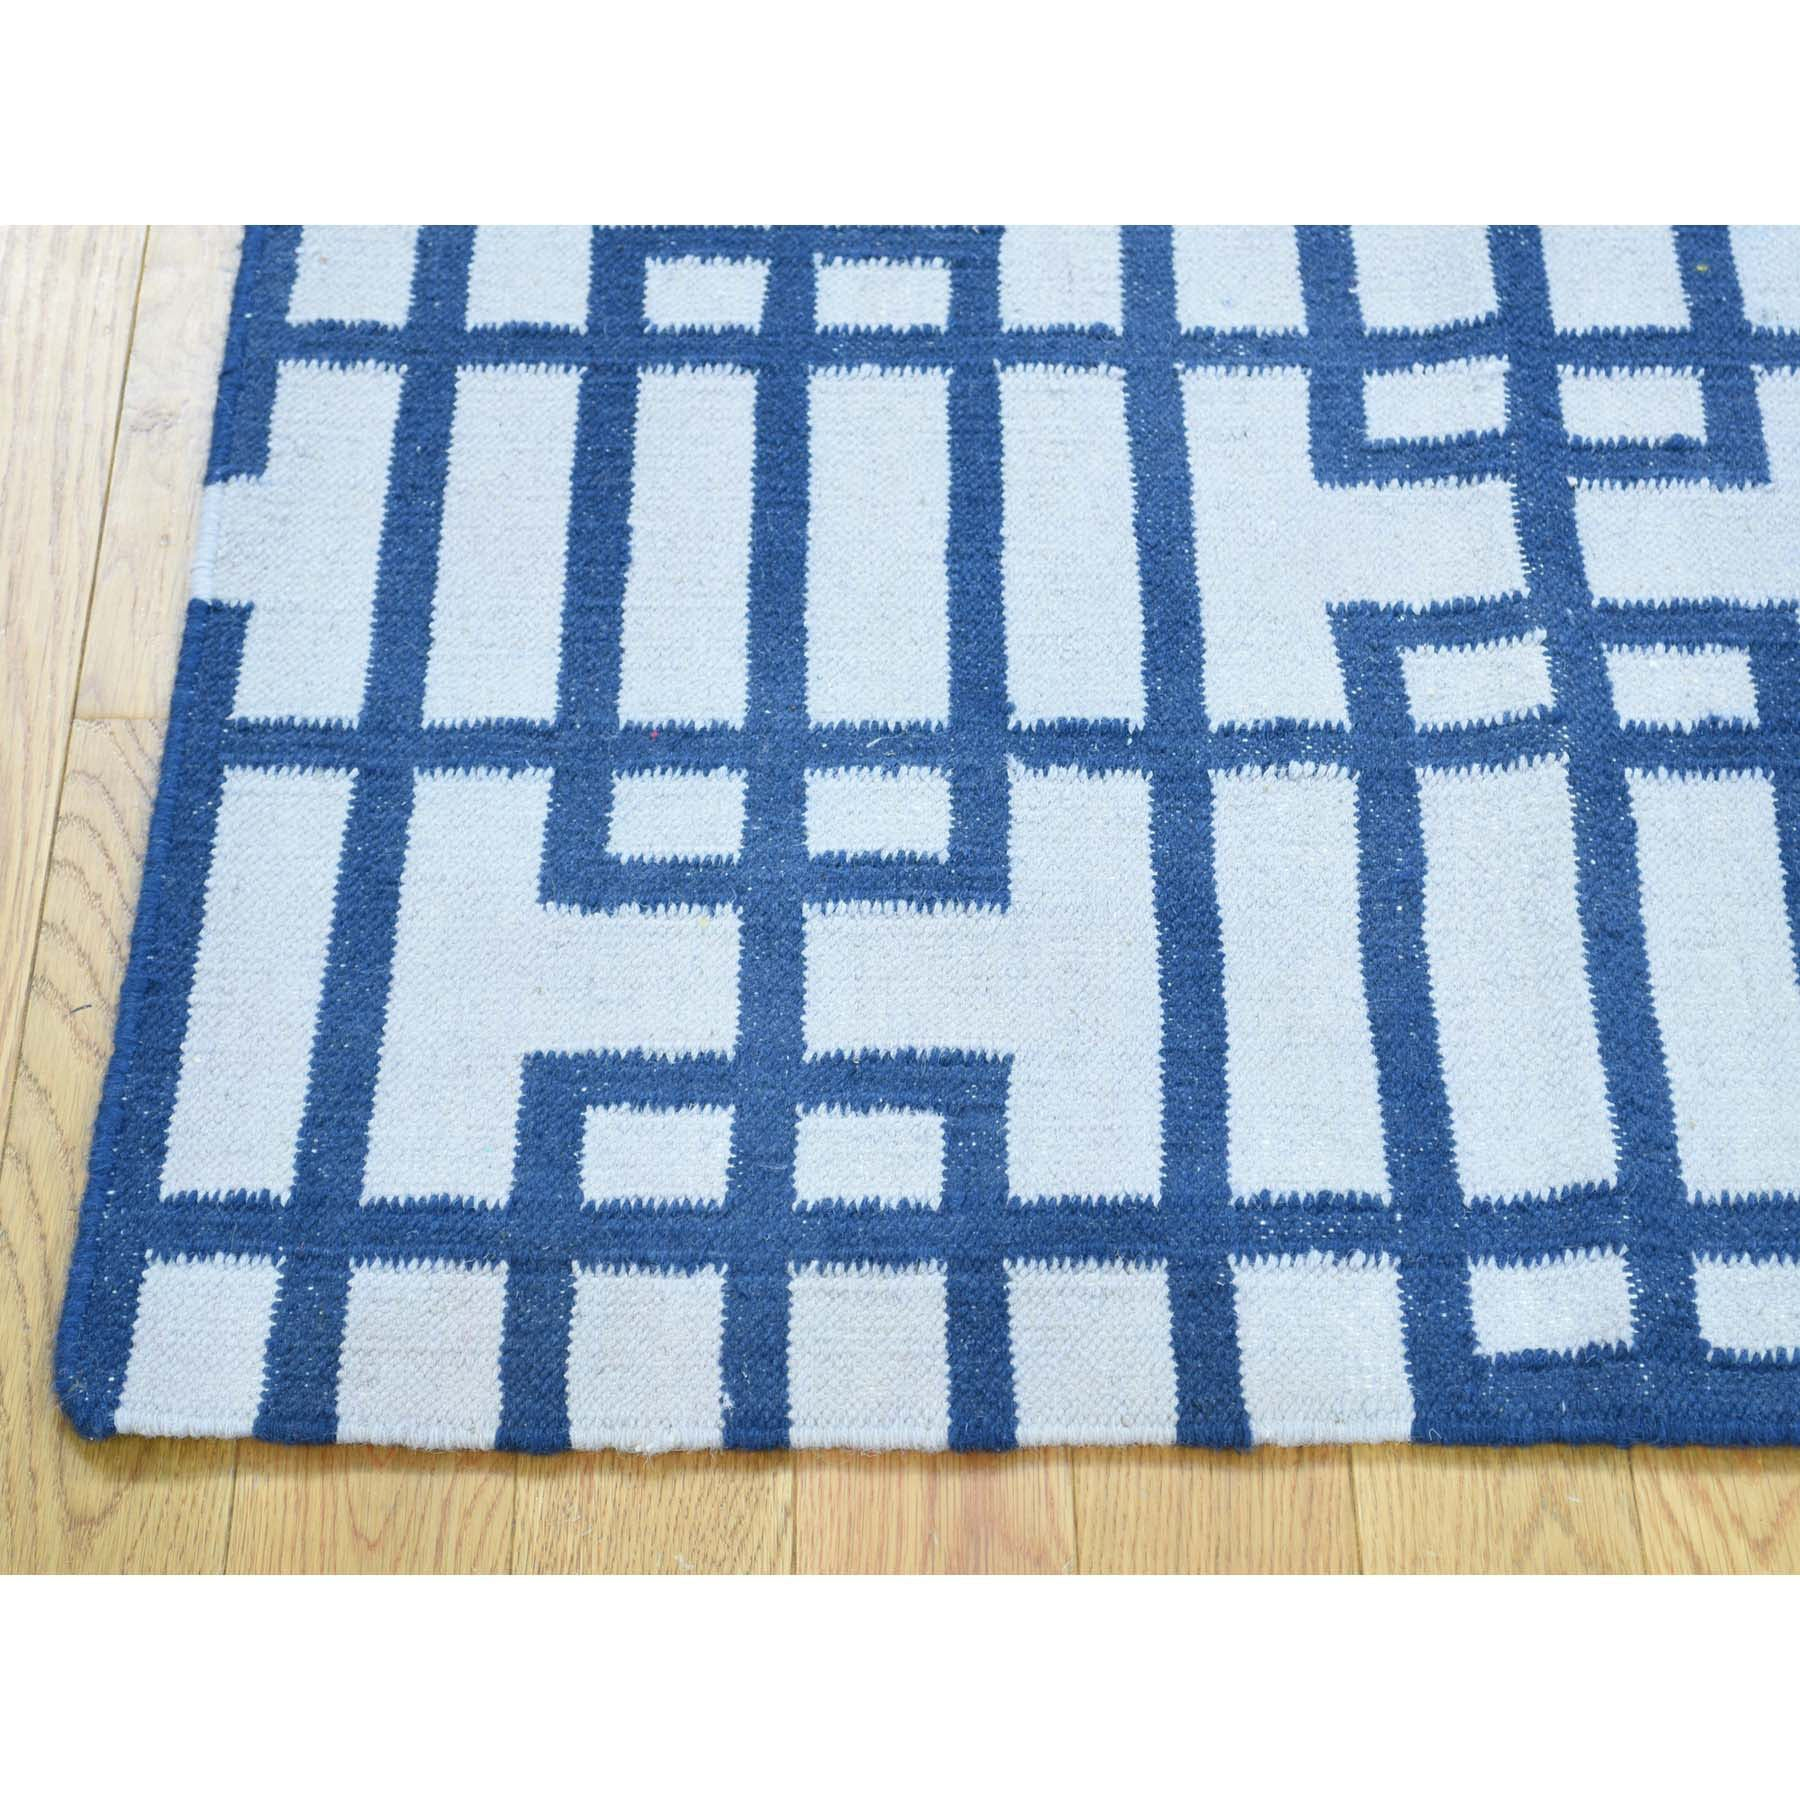 "Handmade Flat Weave Rectangle Rug > Design# SH32031 > Size: 3'-1"" x 5'-4"" [ONLINE ONLY]"